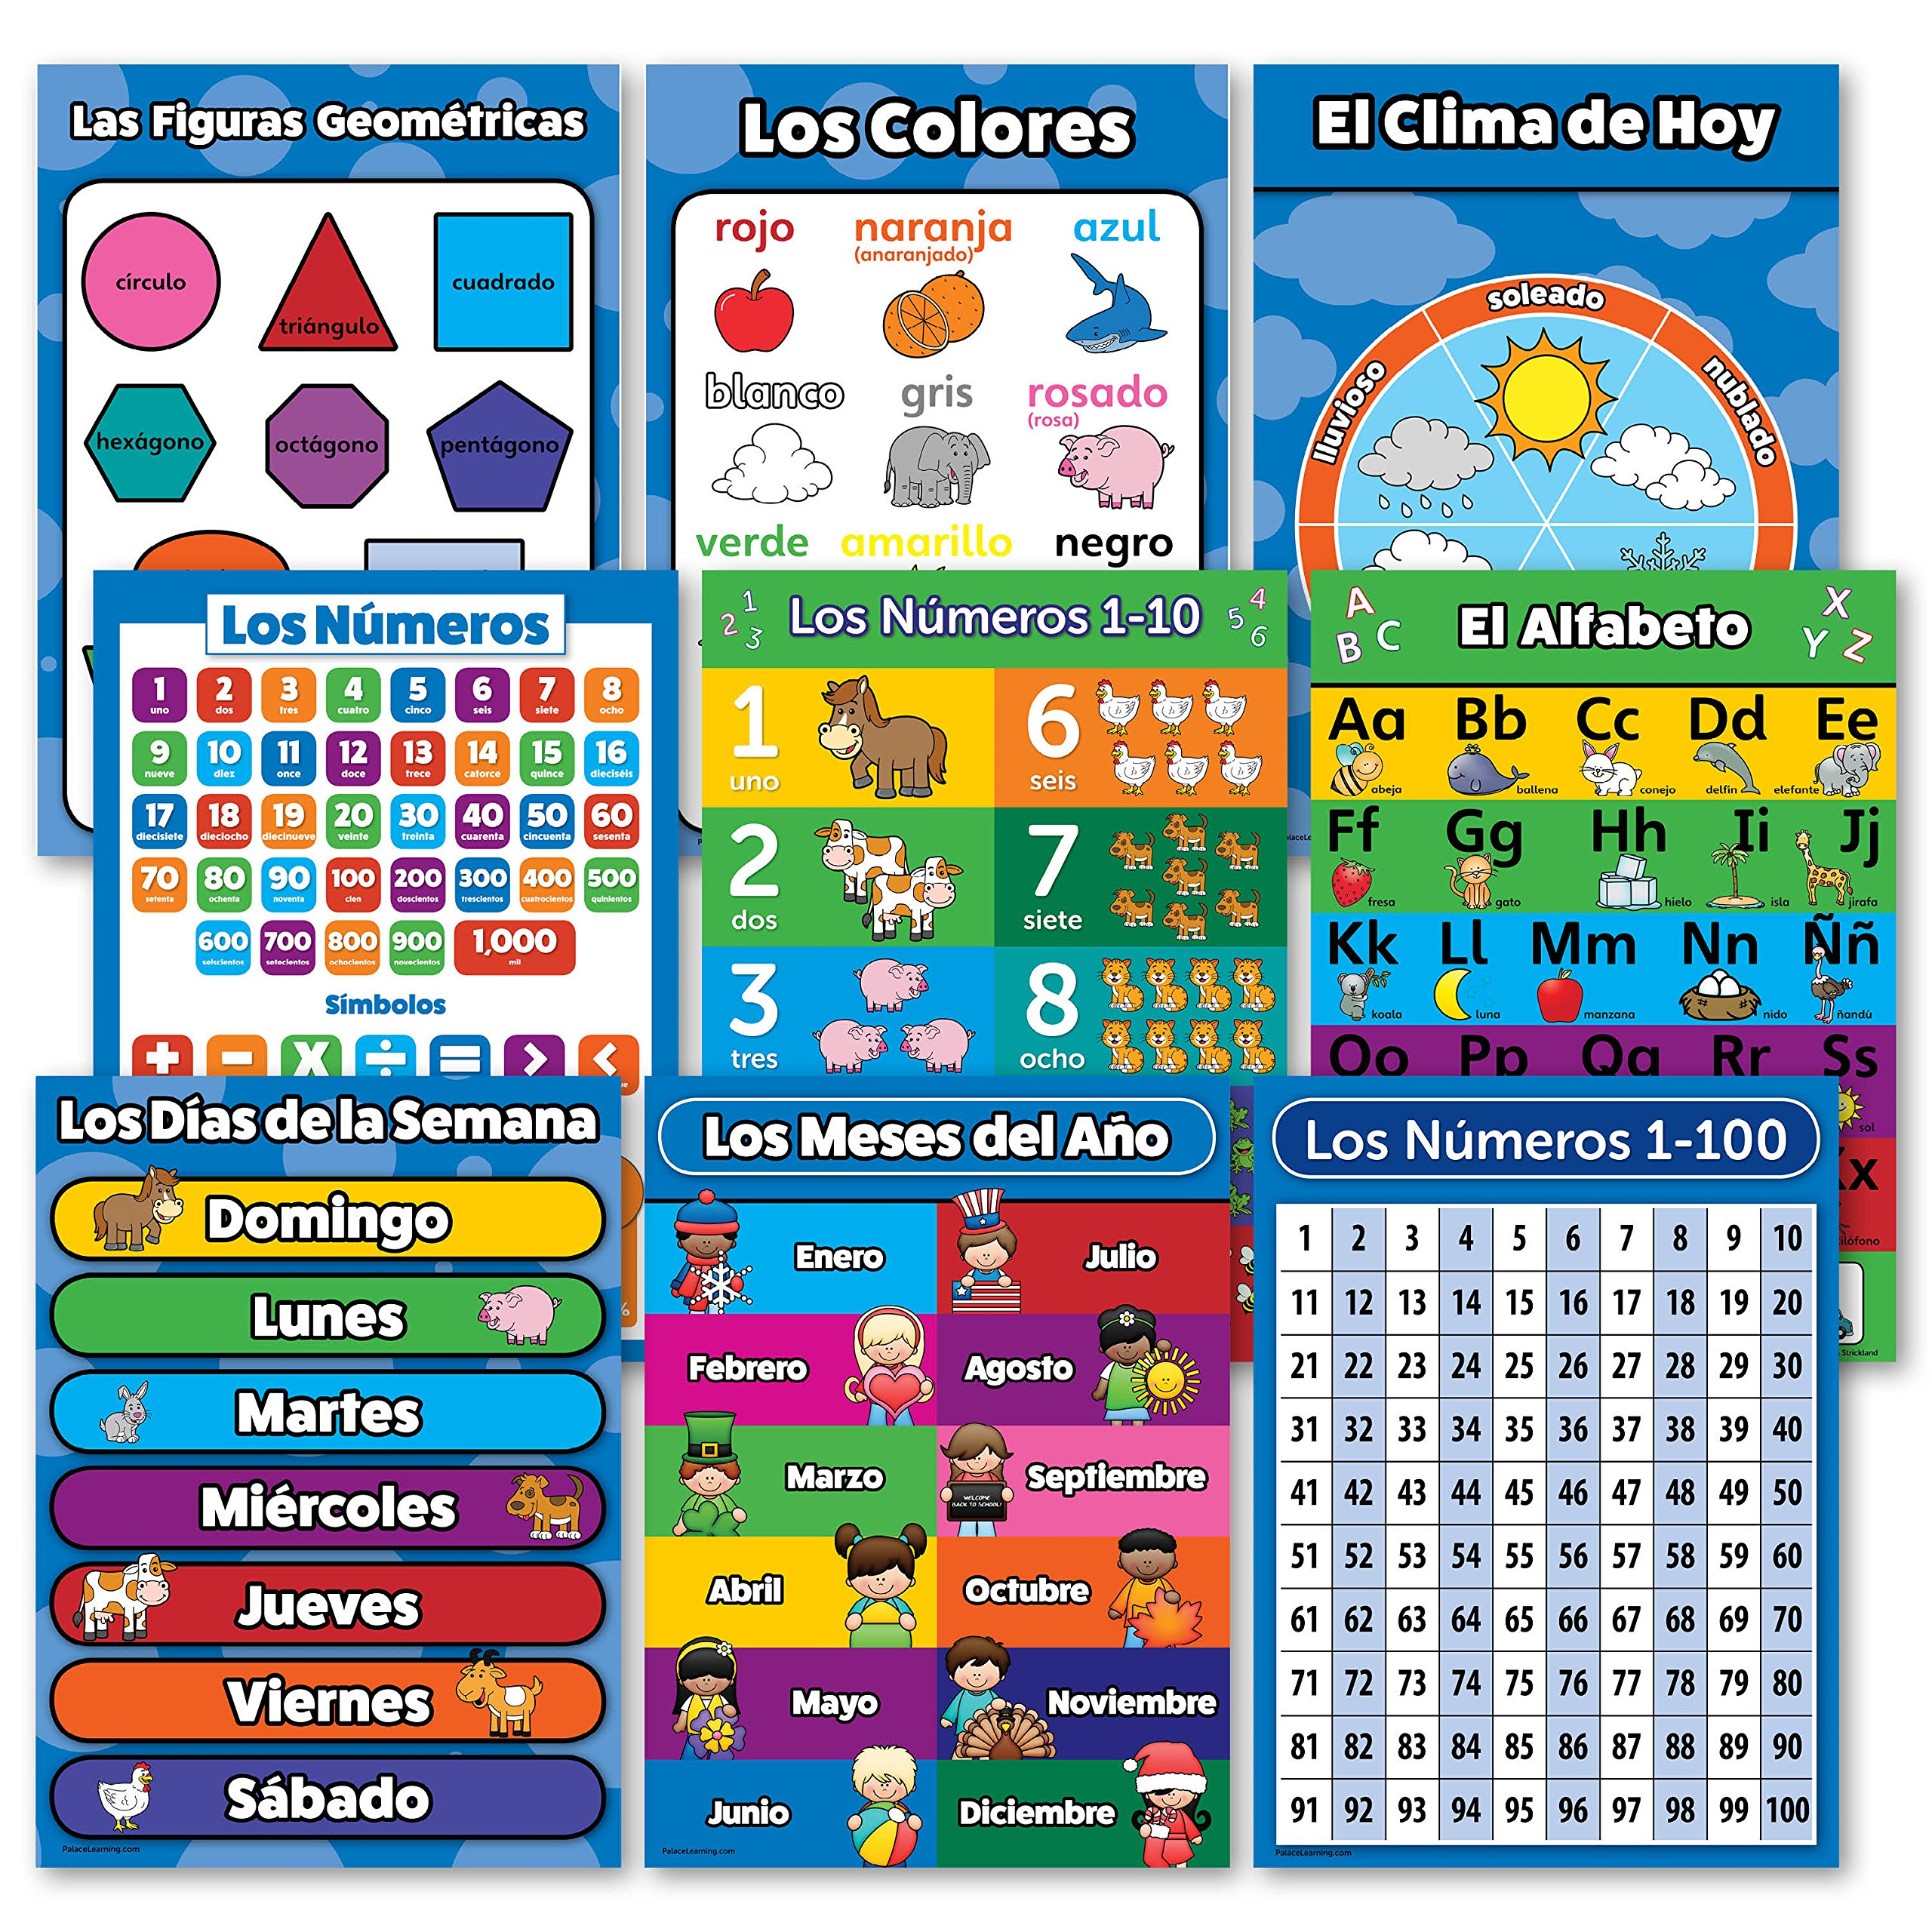 Spanish Toddler Learning Poster Kit - 9 Educational Preschool Charts, ABC - Alphabet, Numbers 1-10, Shapes, Colors, Numbers 1-100, Days of the Week, Months of the Year, Español Alfabeto - Abecedario